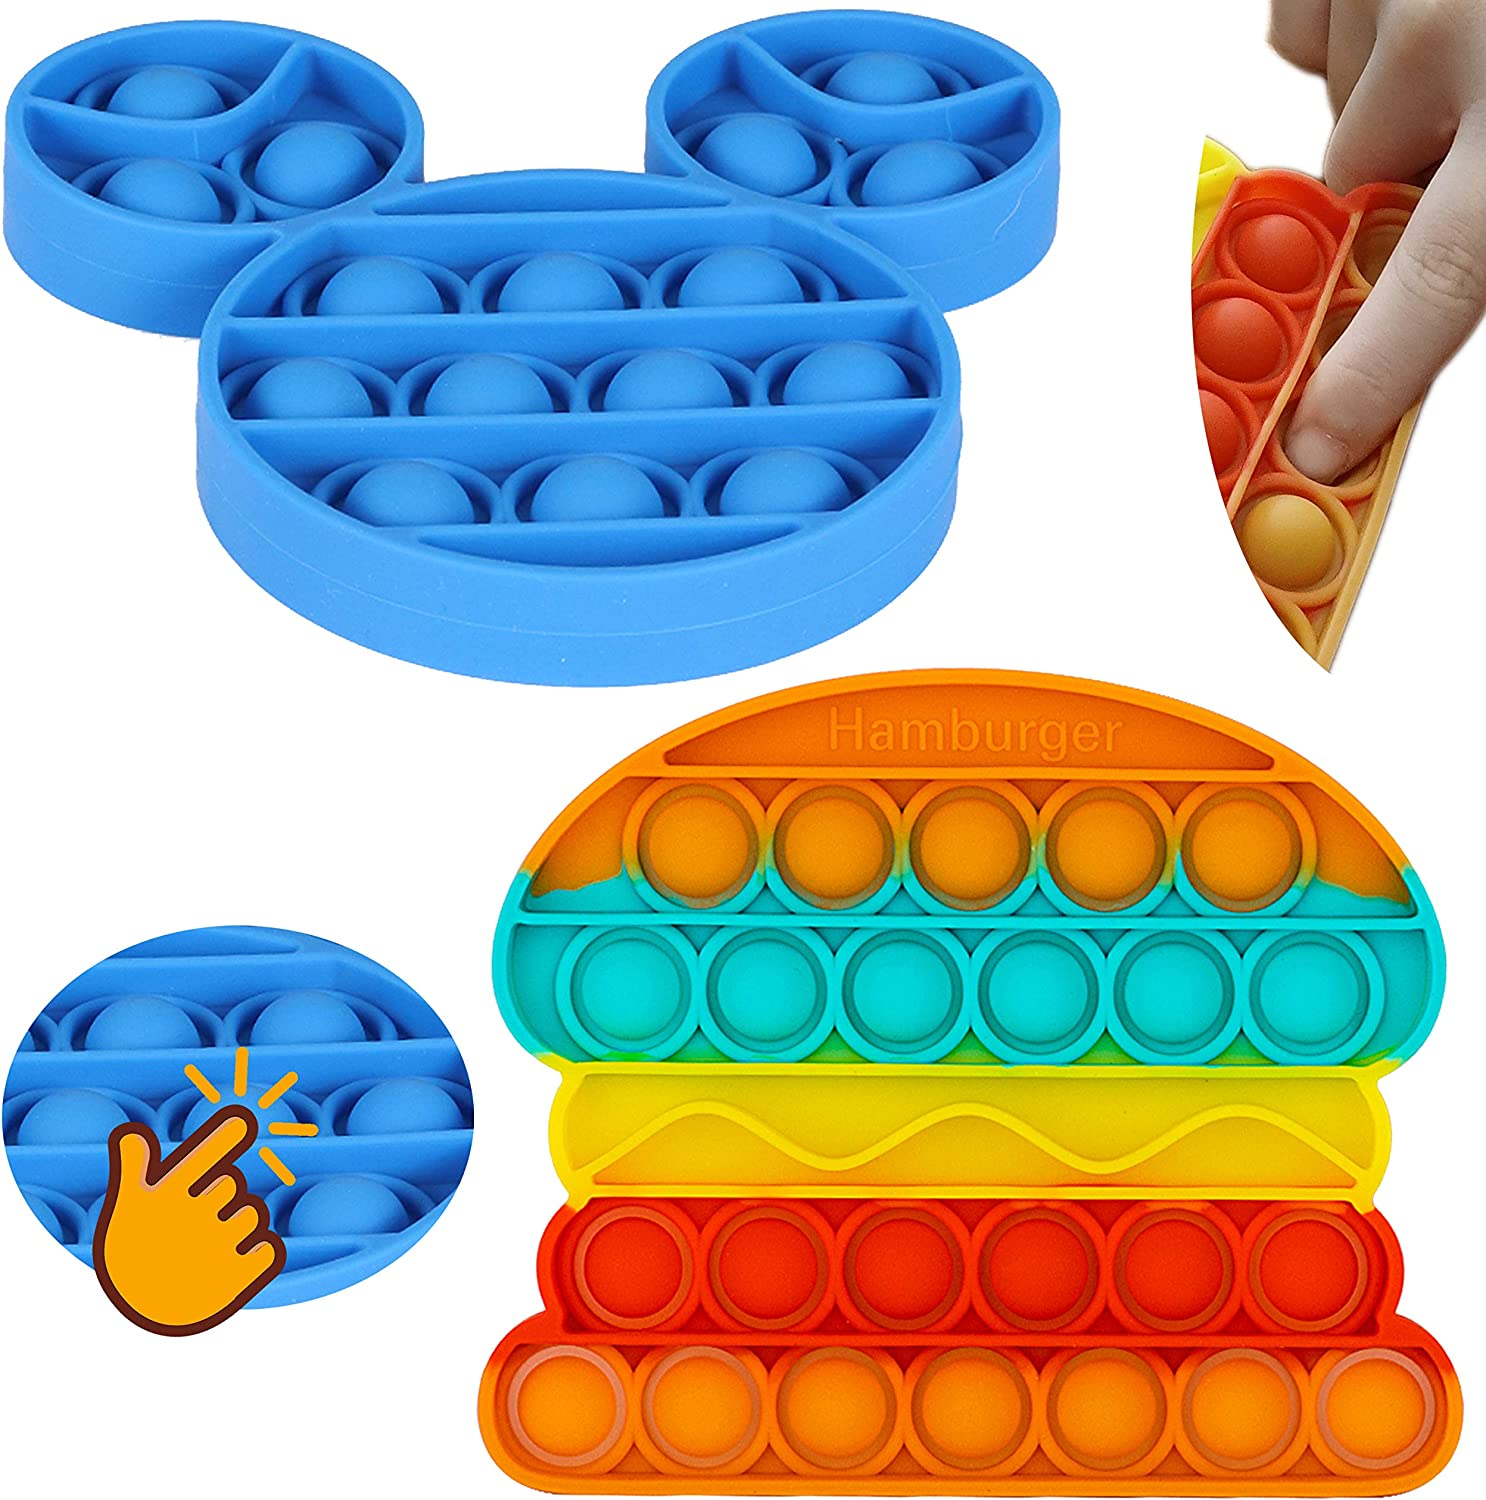 OpenMind Push Pop Bubble Fidget Squeeze Sensory Toy Special Needs Anxiety Stress Reliever 2Pcs Set of Colorful Burger and a Blue Mouse for Kids, Family, & Friends Silicone Bop-It Game Bubble Popper